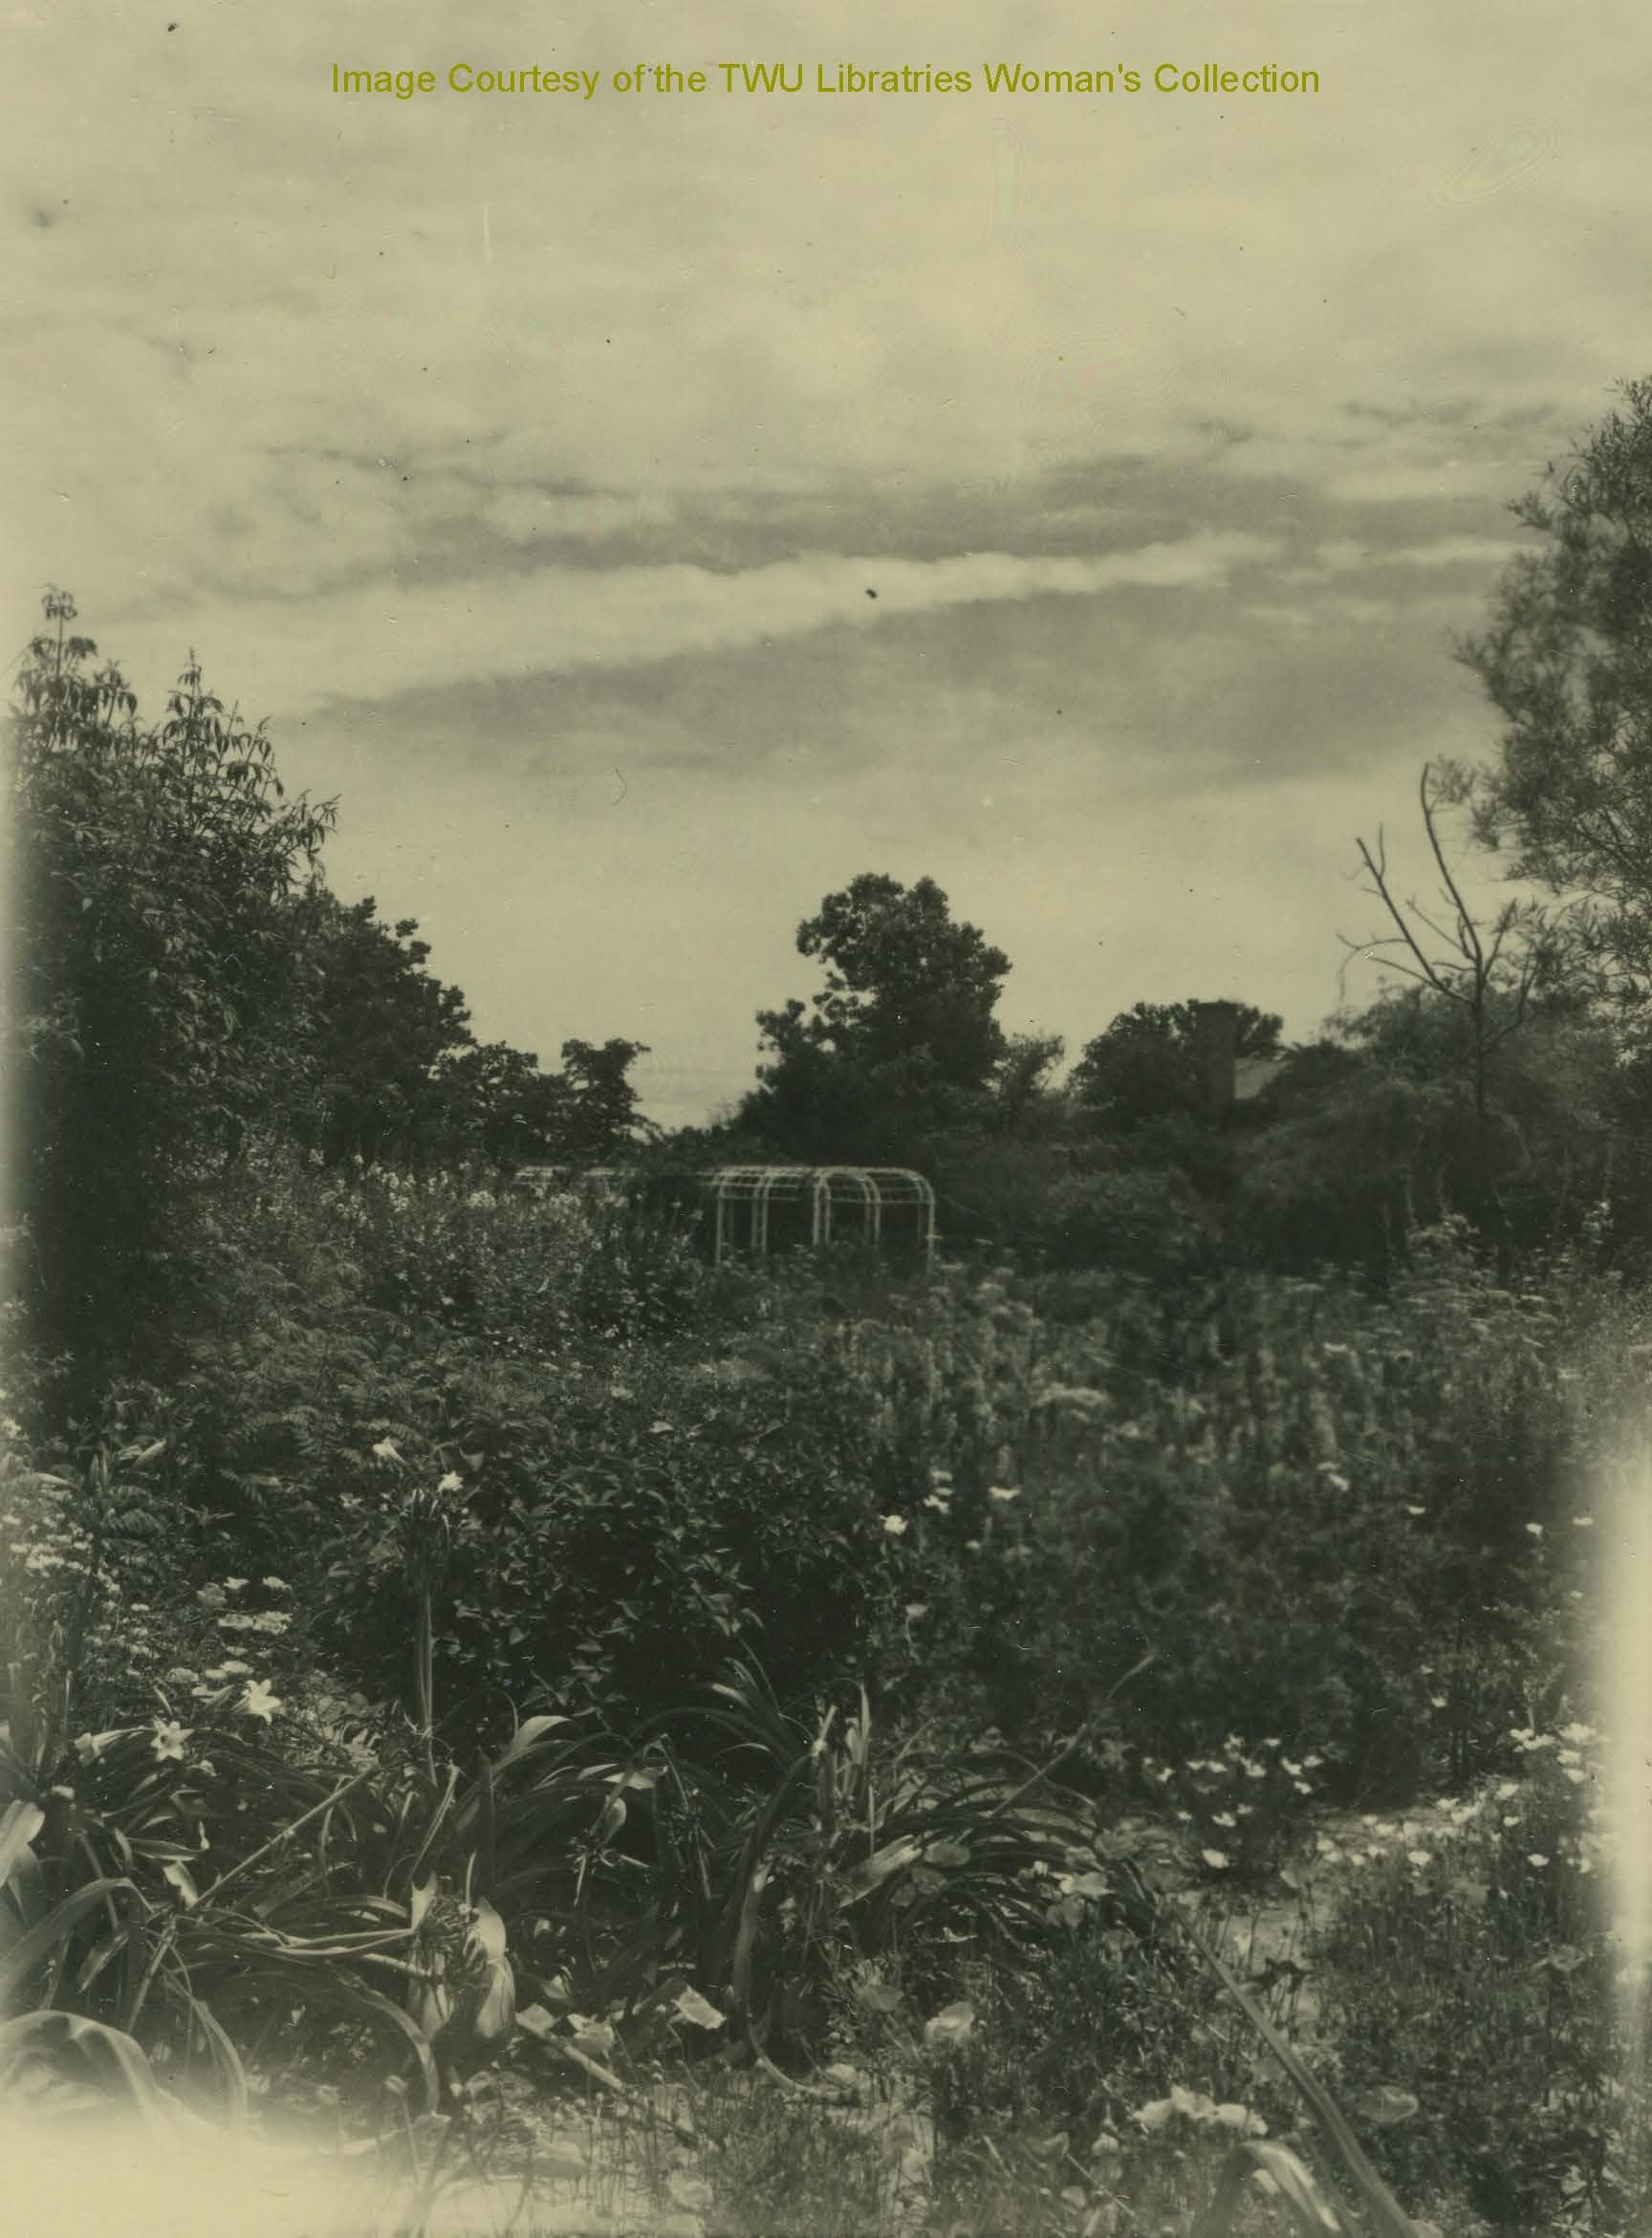 Early Photo of the Botanical Gardens. (Photo: May 1940, Courtesy of the TWU Woman's Collection)